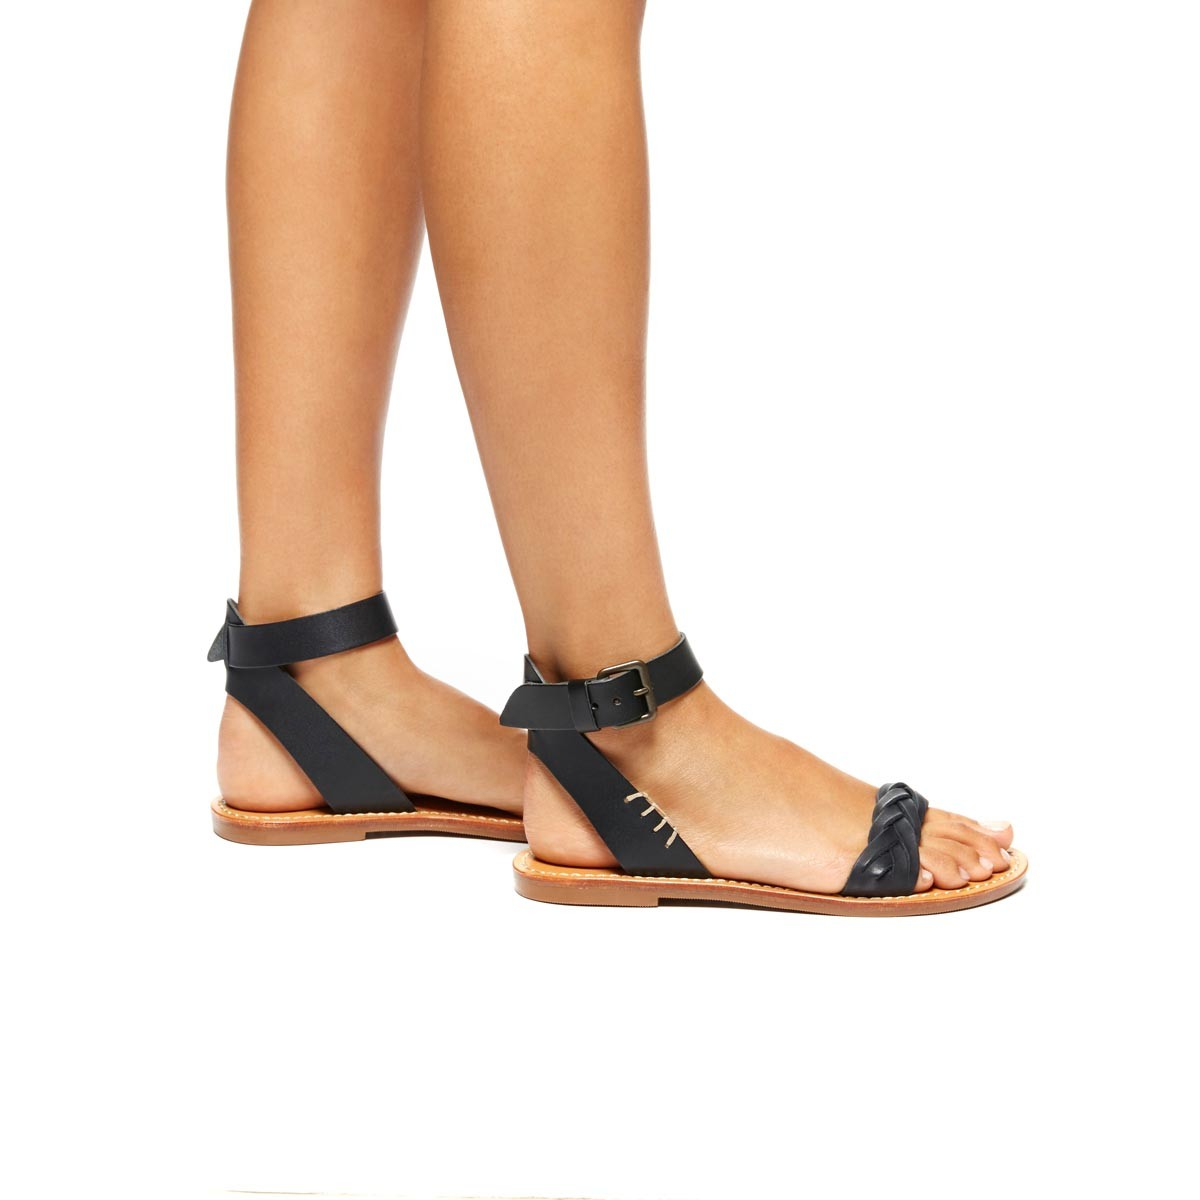 Soludos Leather Braided Ankle Strap Sandal In Black Lyst